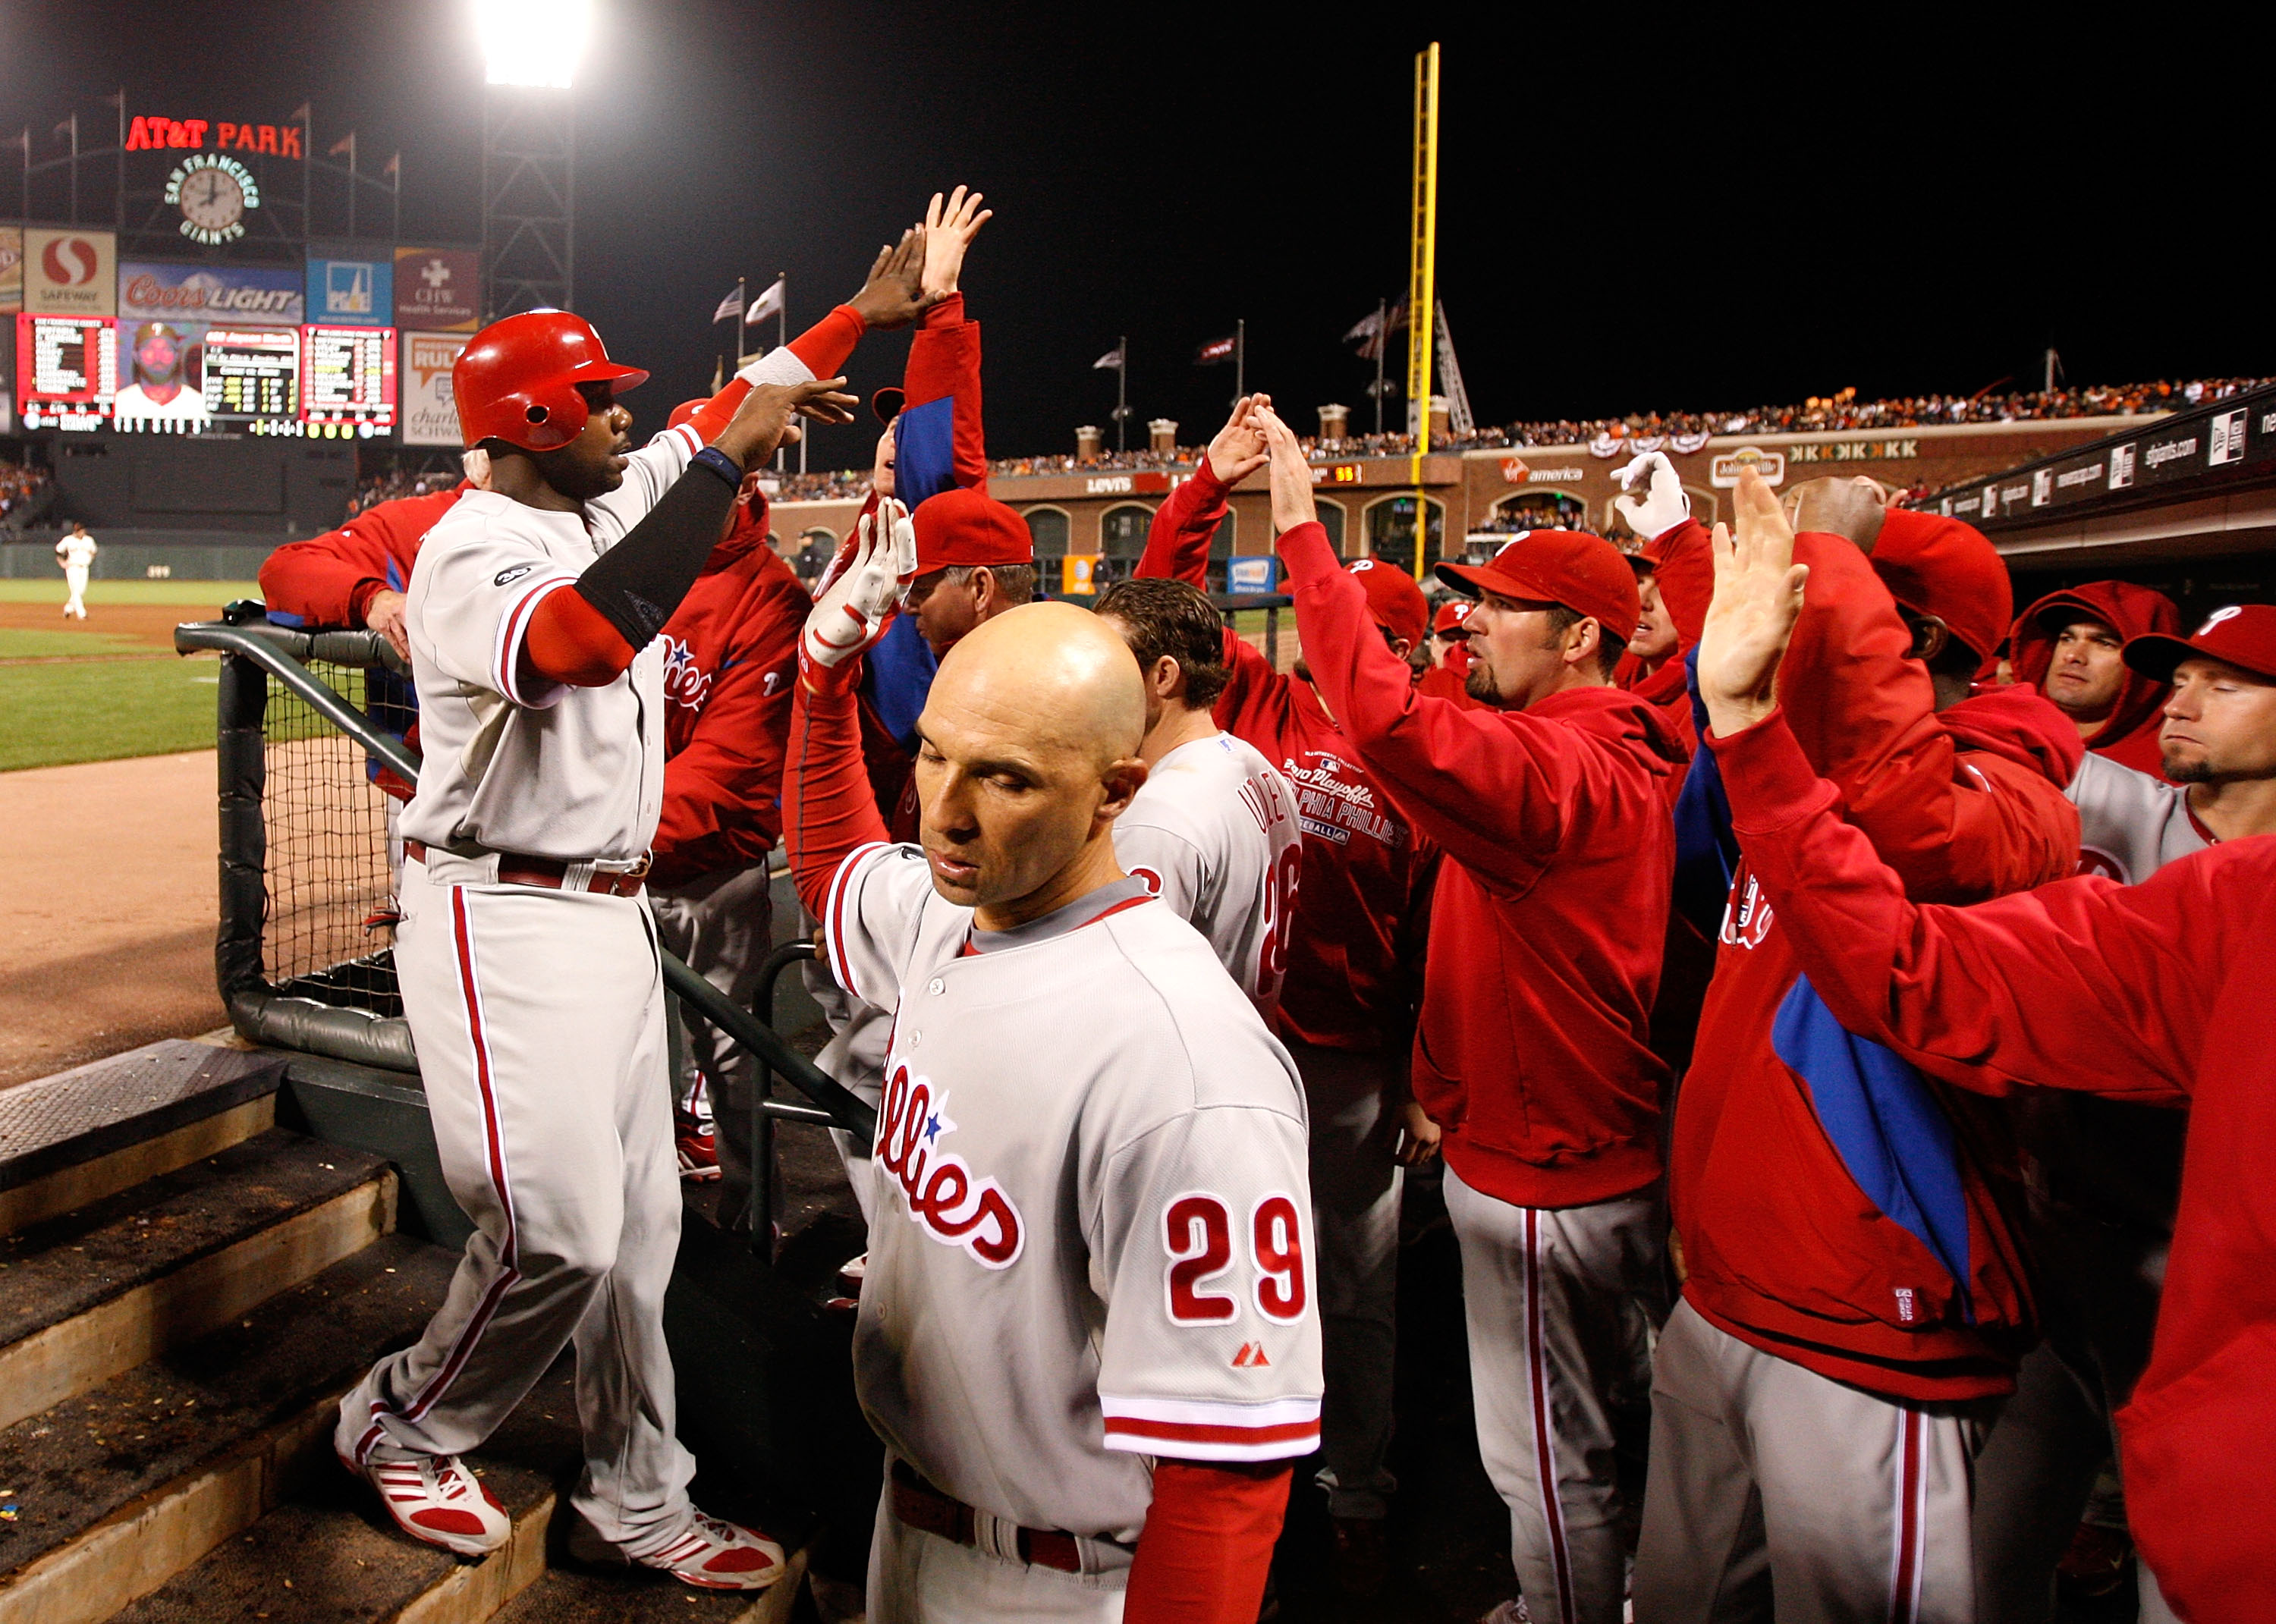 SAN FRANCISCO - OCTOBER 20:  Ryan Howard #6 of the Philadelphia Phillies celebrates in the dugout after scoring in the eighth inning against the San Francisco Giants in Game Four of the NLCS during the 2010 MLB Playoffs at AT&T Park on October 20, 2010 in